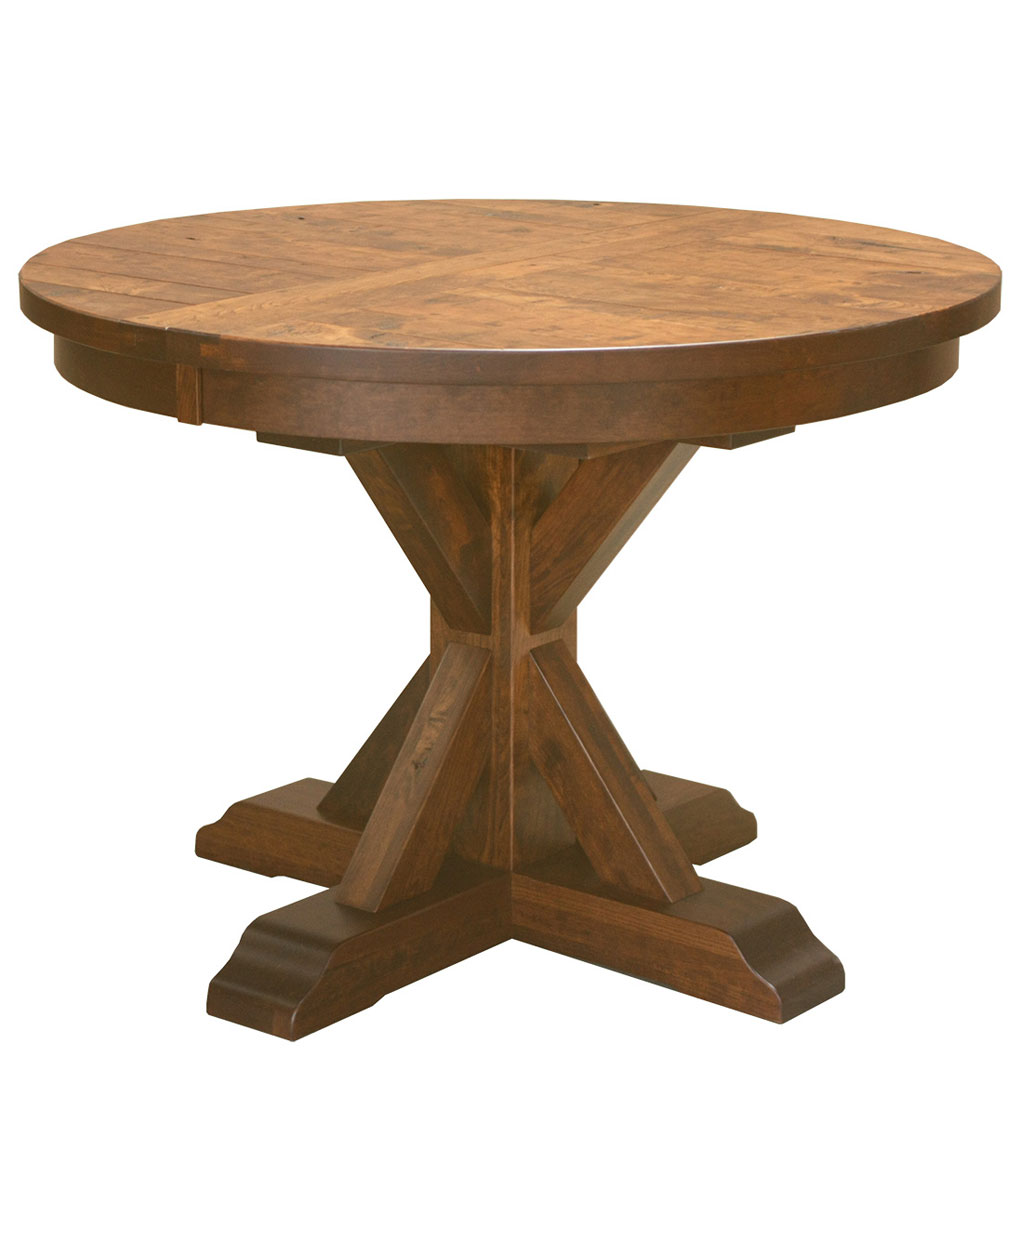 Alberta Single Pedestal Table [Rustic / Industrial]